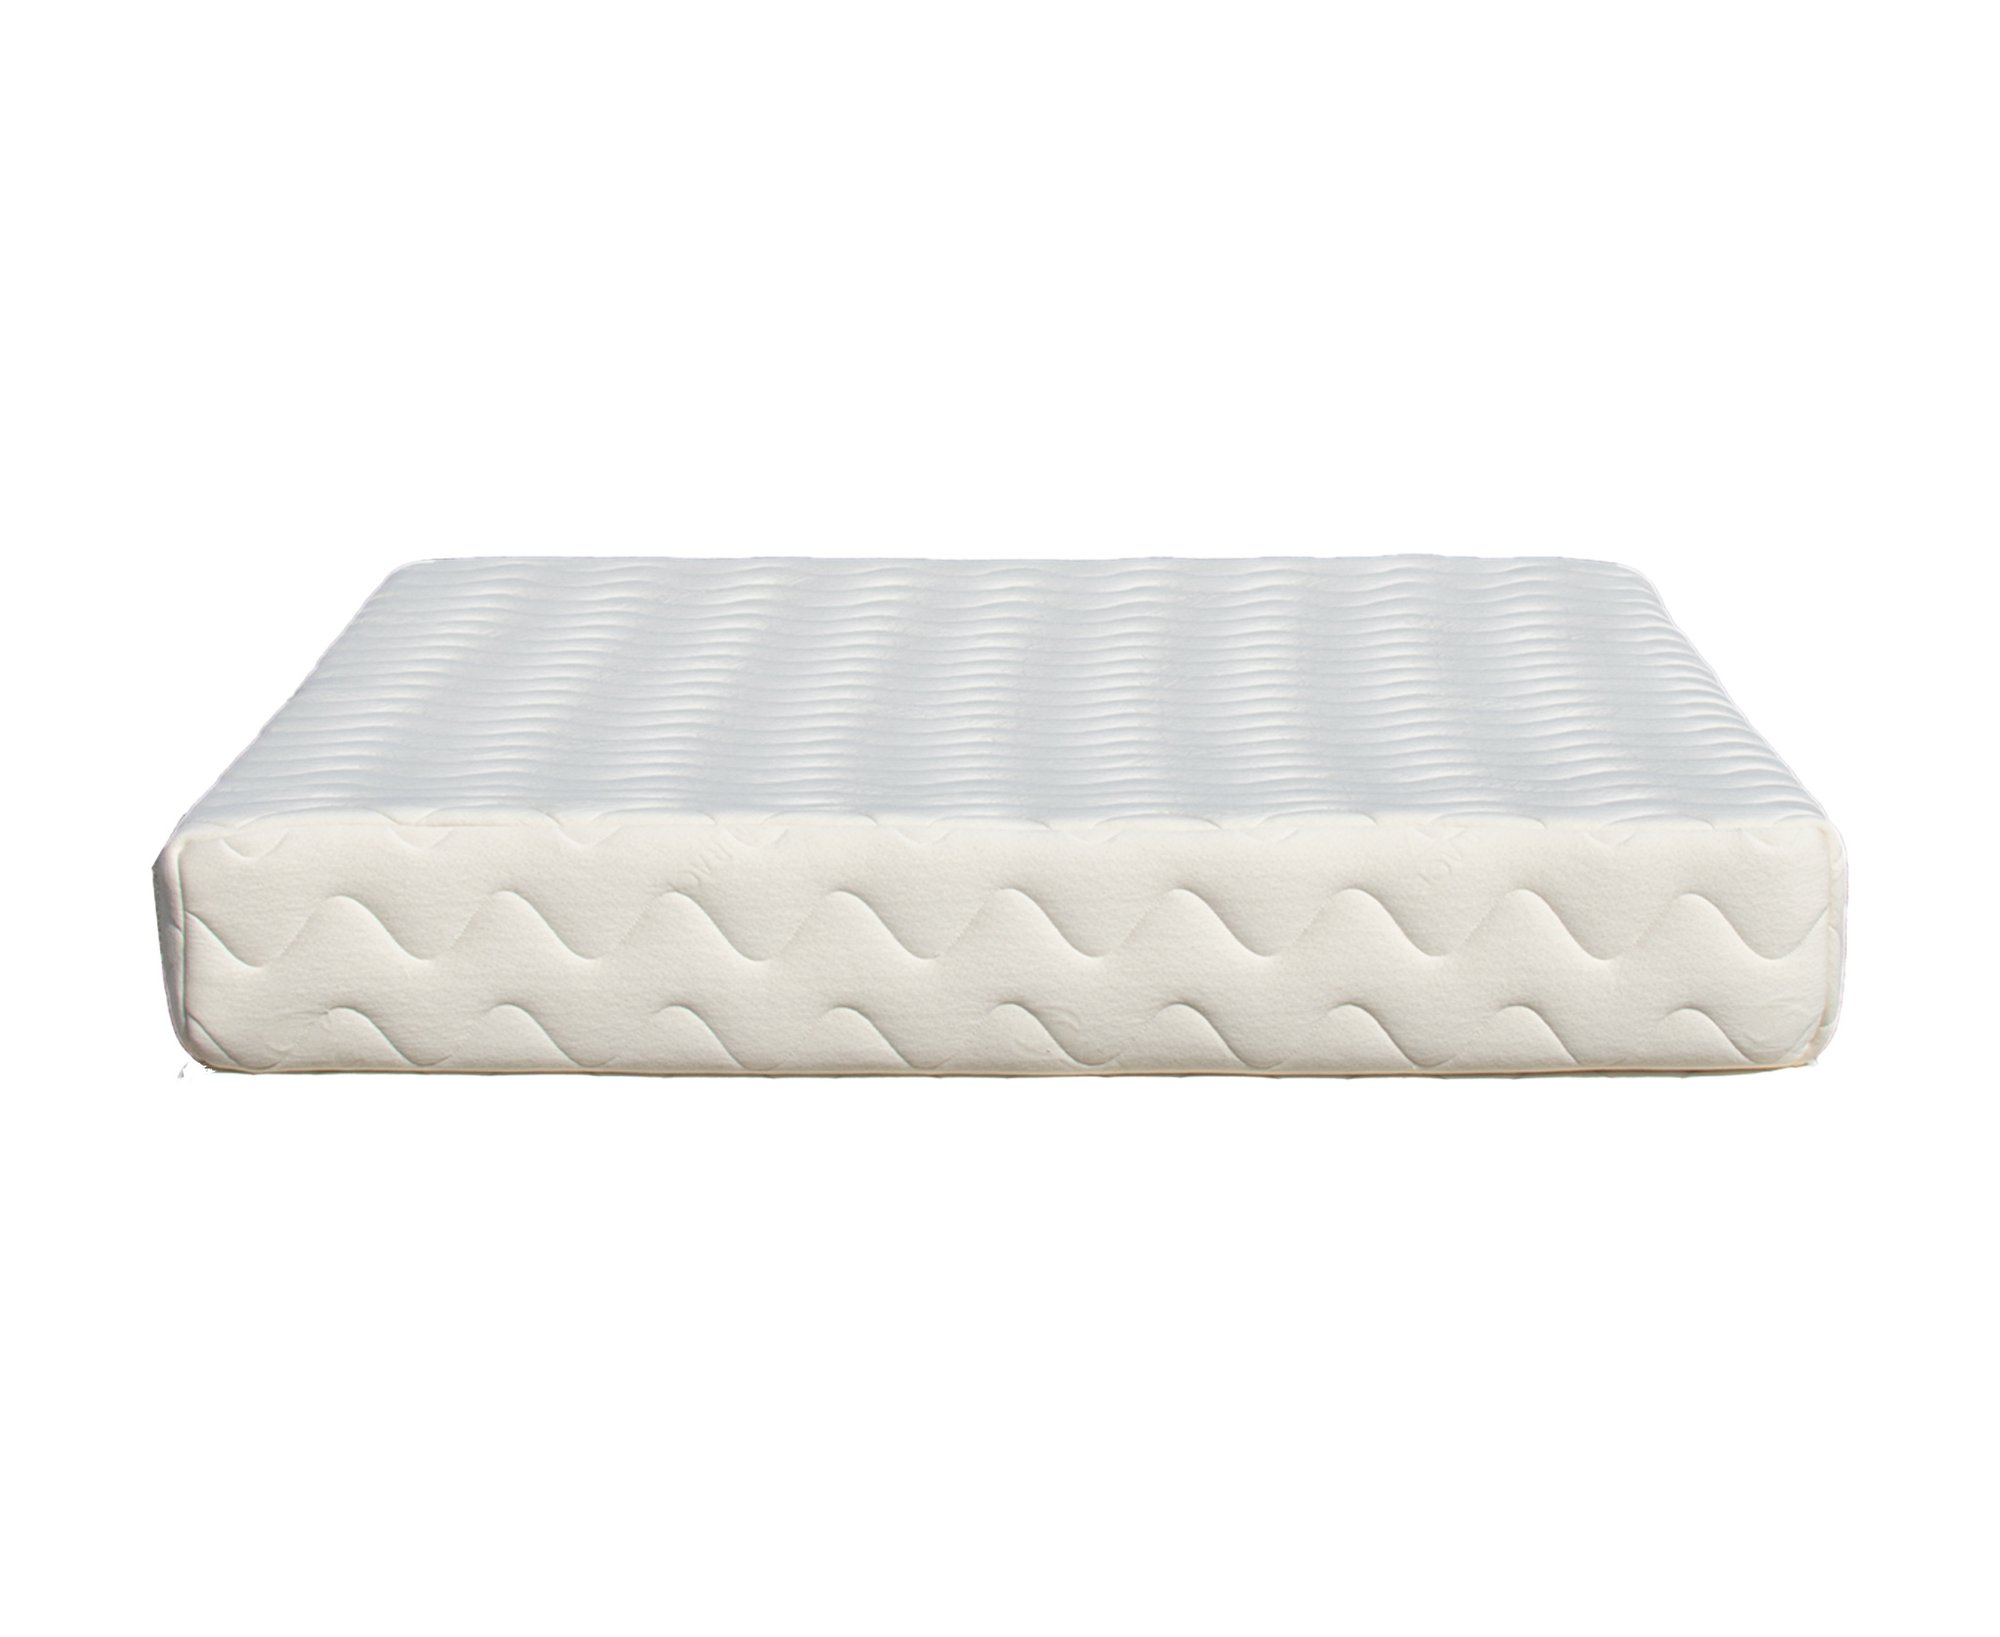 Latex rubber mattress allergy